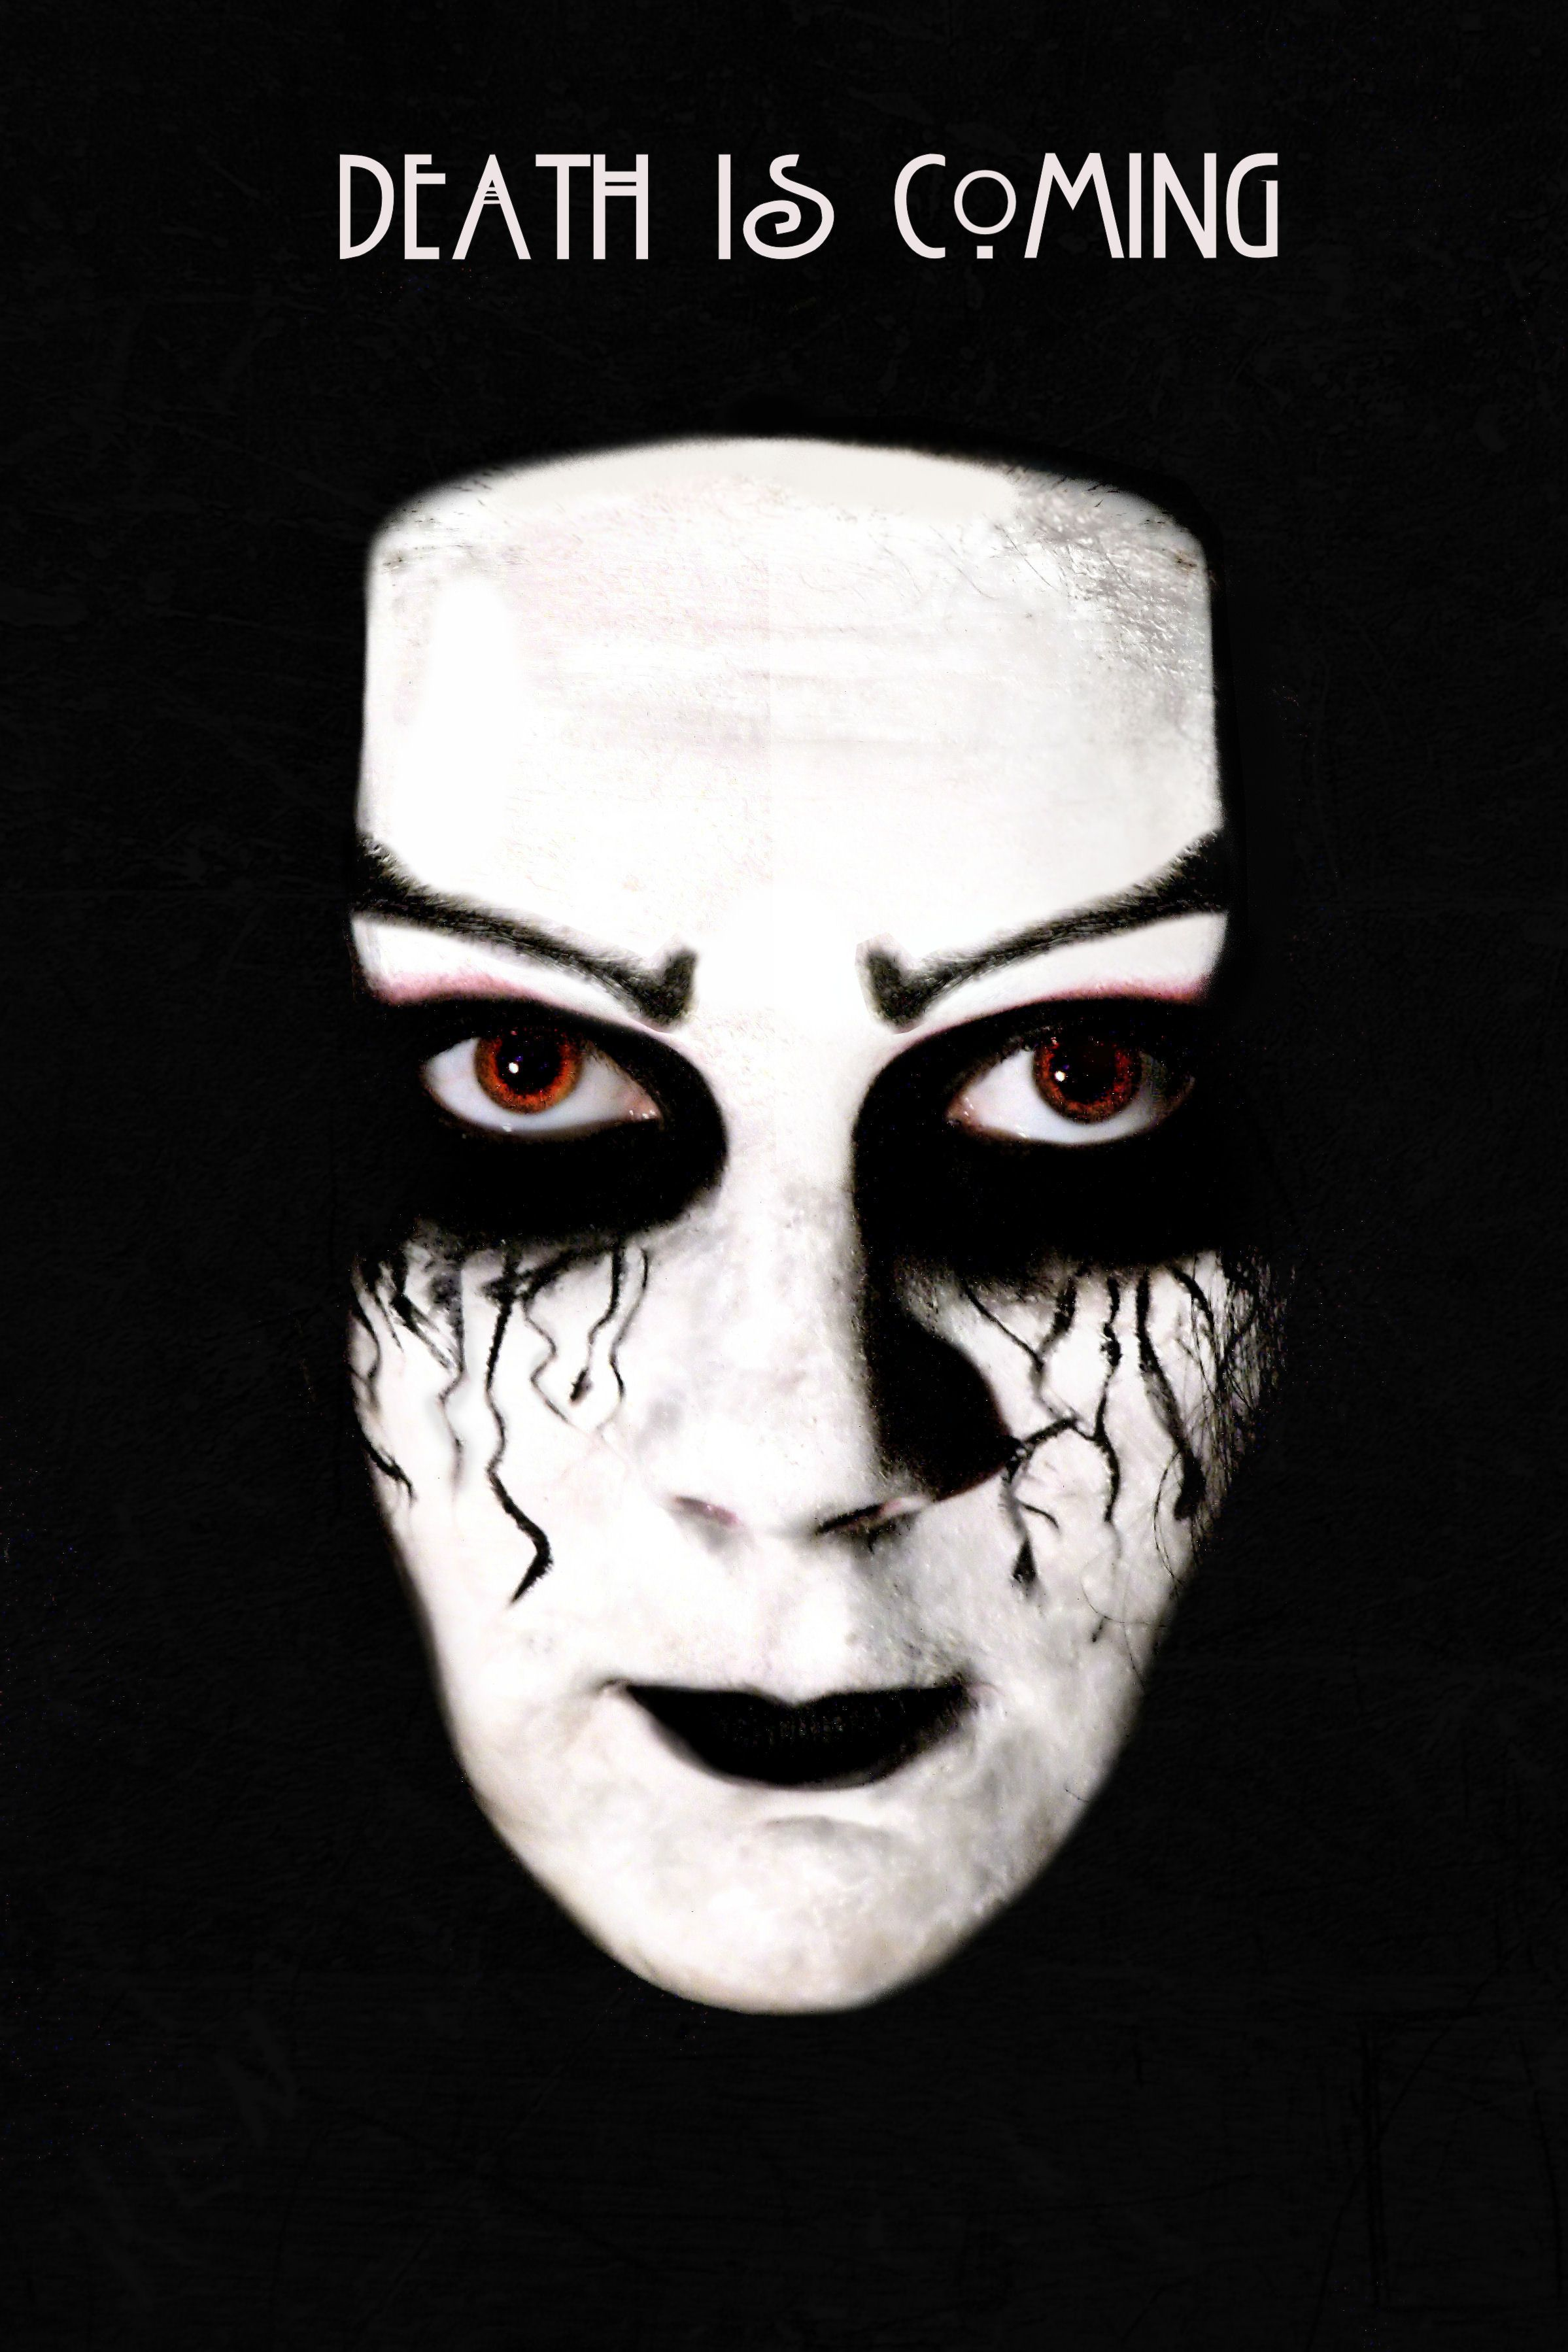 Halloween Makeup Tutorial Dark Darkness Black White Face Skin Ahs Blood Scary Creepy Czechgirl Czech Beauty Blogger Photo Nikonj